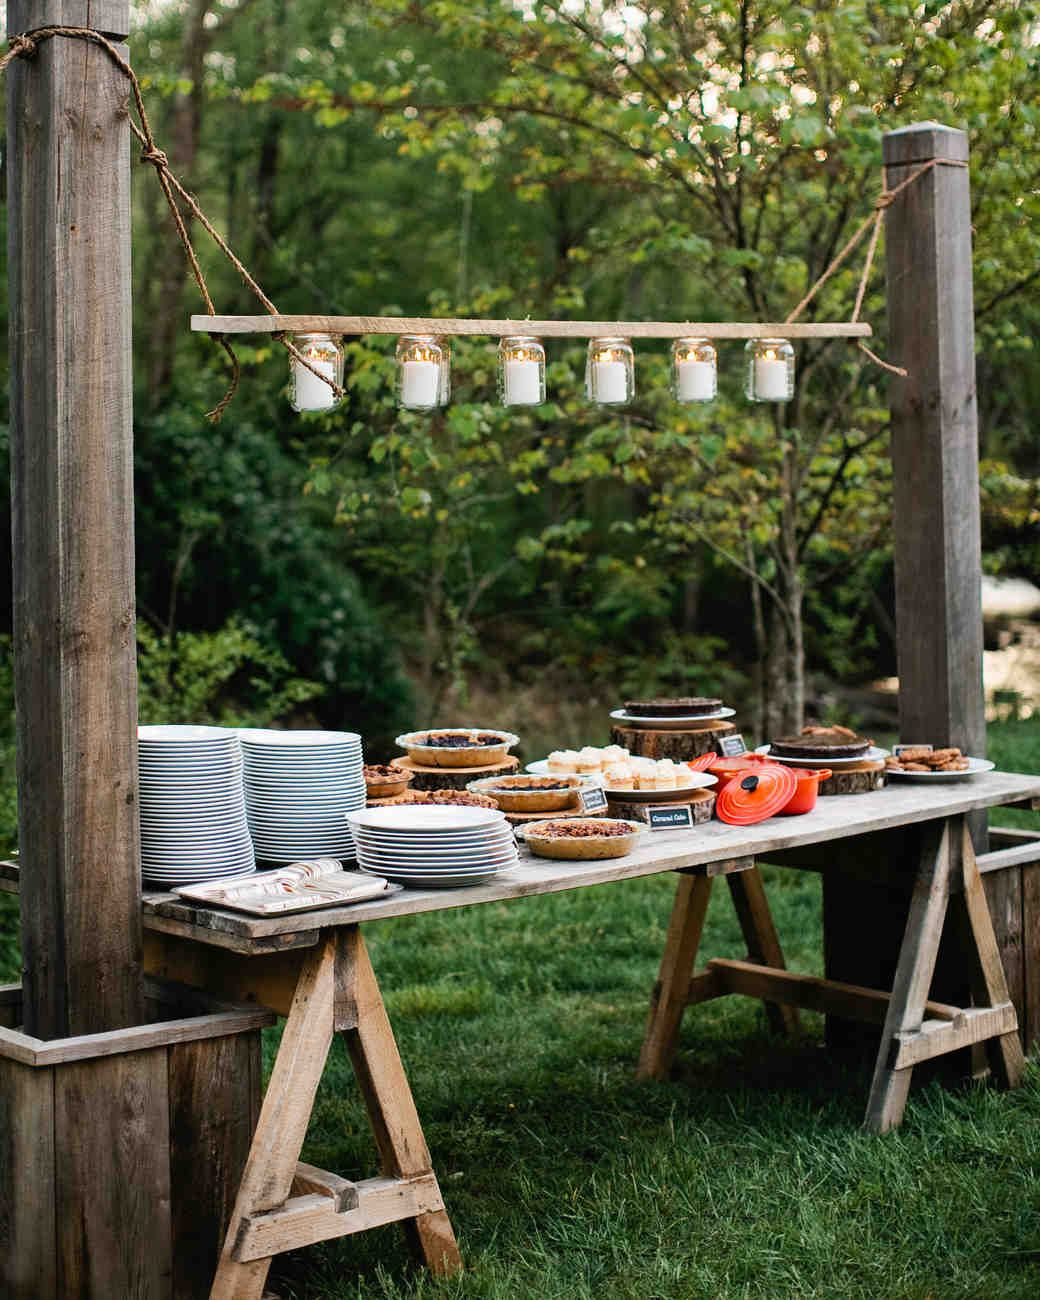 Rustic Wedding Decorations For Indoor And Outdoor Settings: Sally And Christian's Rustic Outdoor Rehearsal Dinner At